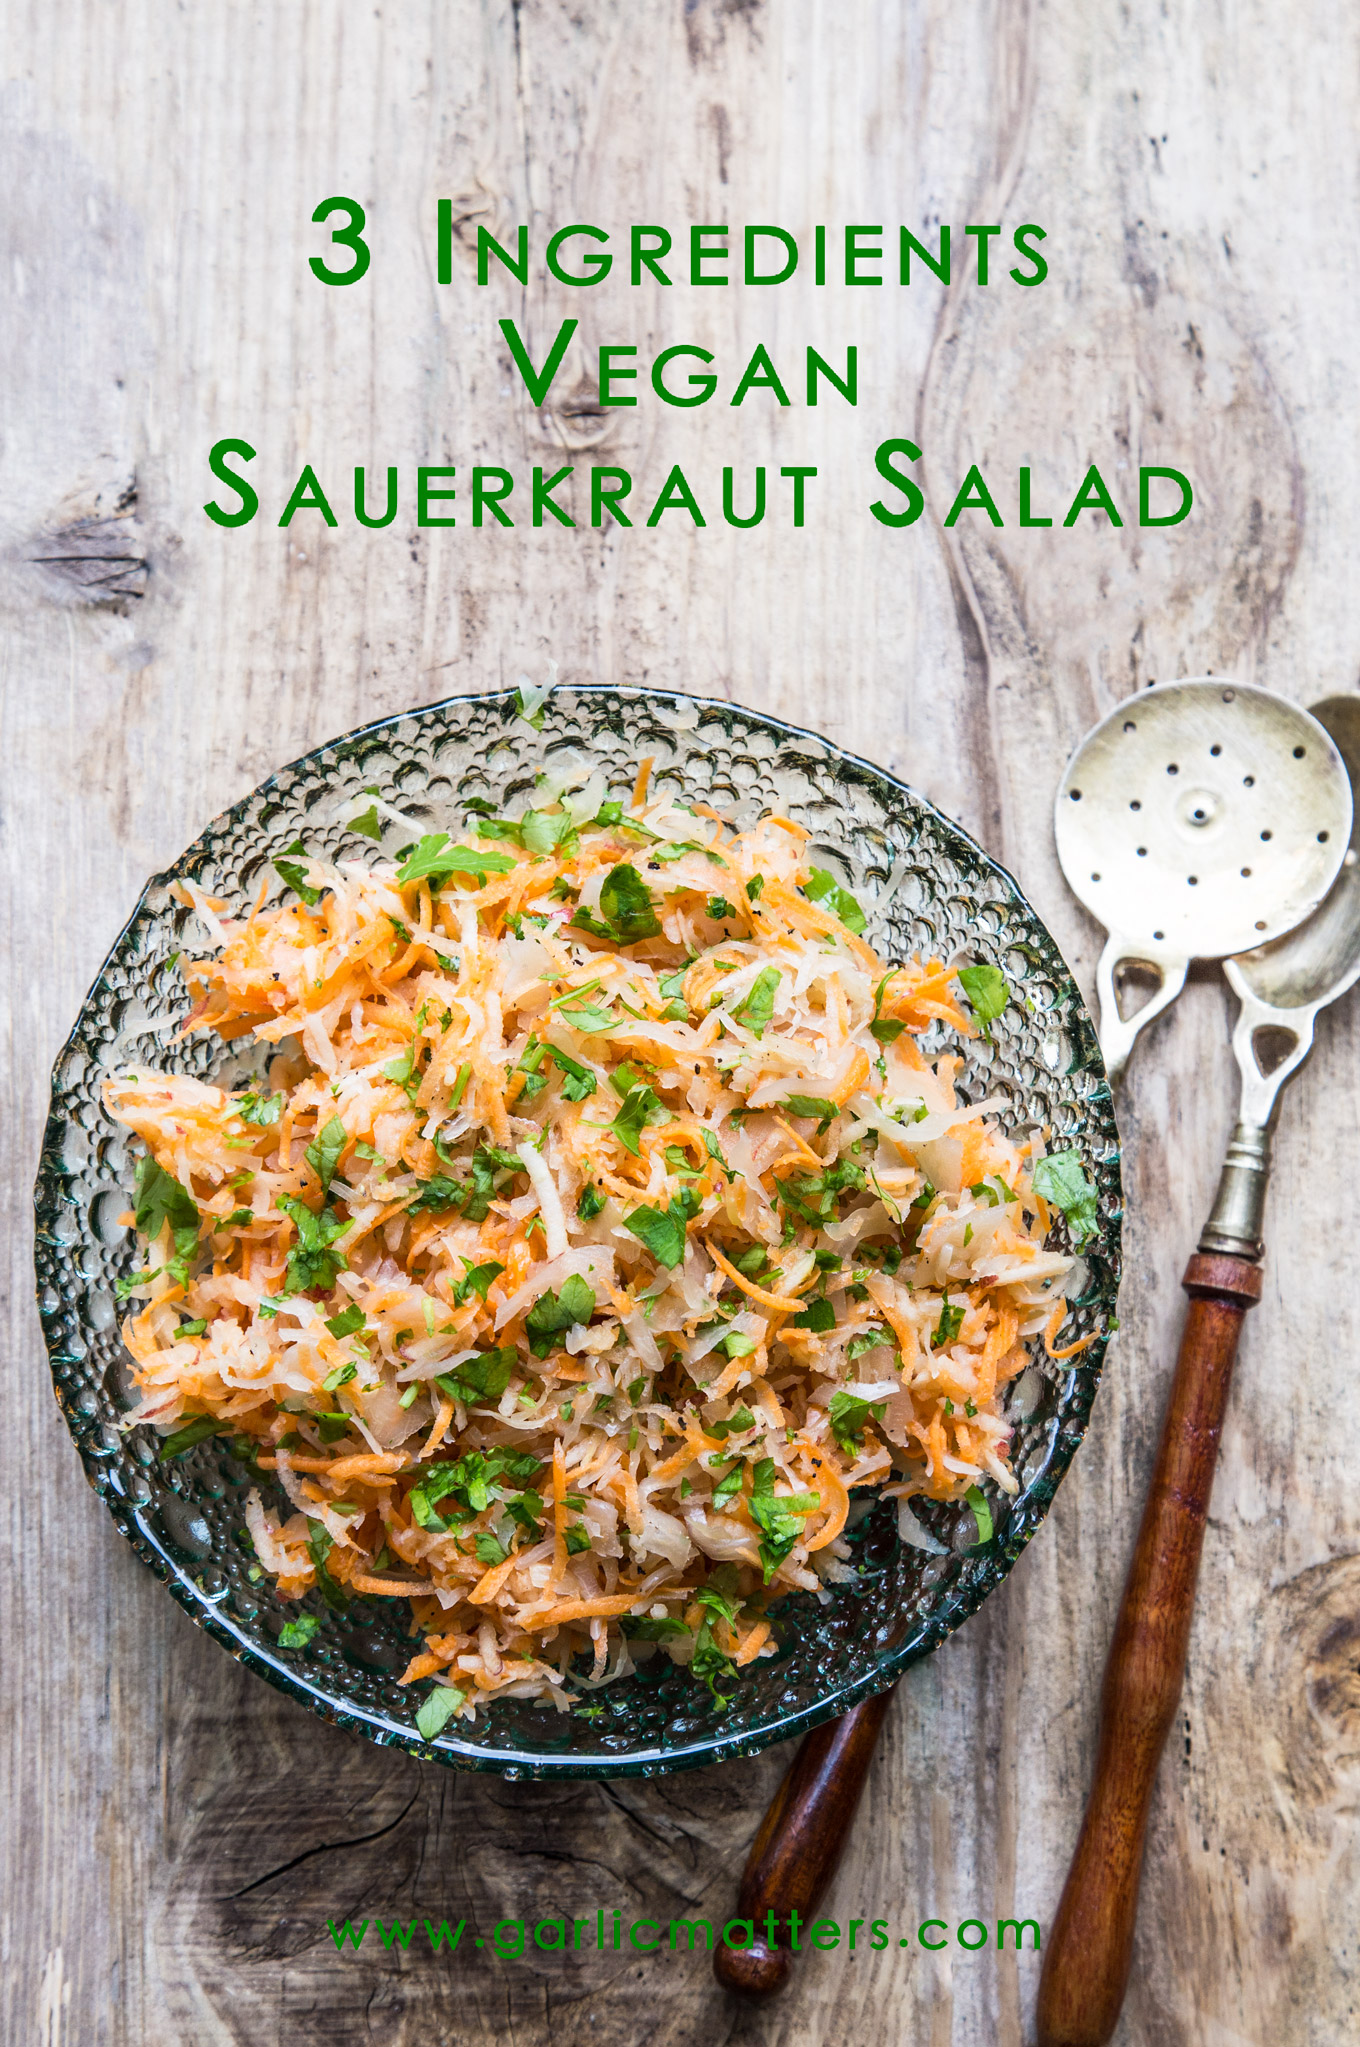 Vegan sauerkraut salad recipe - sweet and sour, healthy, probiotic combination. 10 min, 3 ingredients.